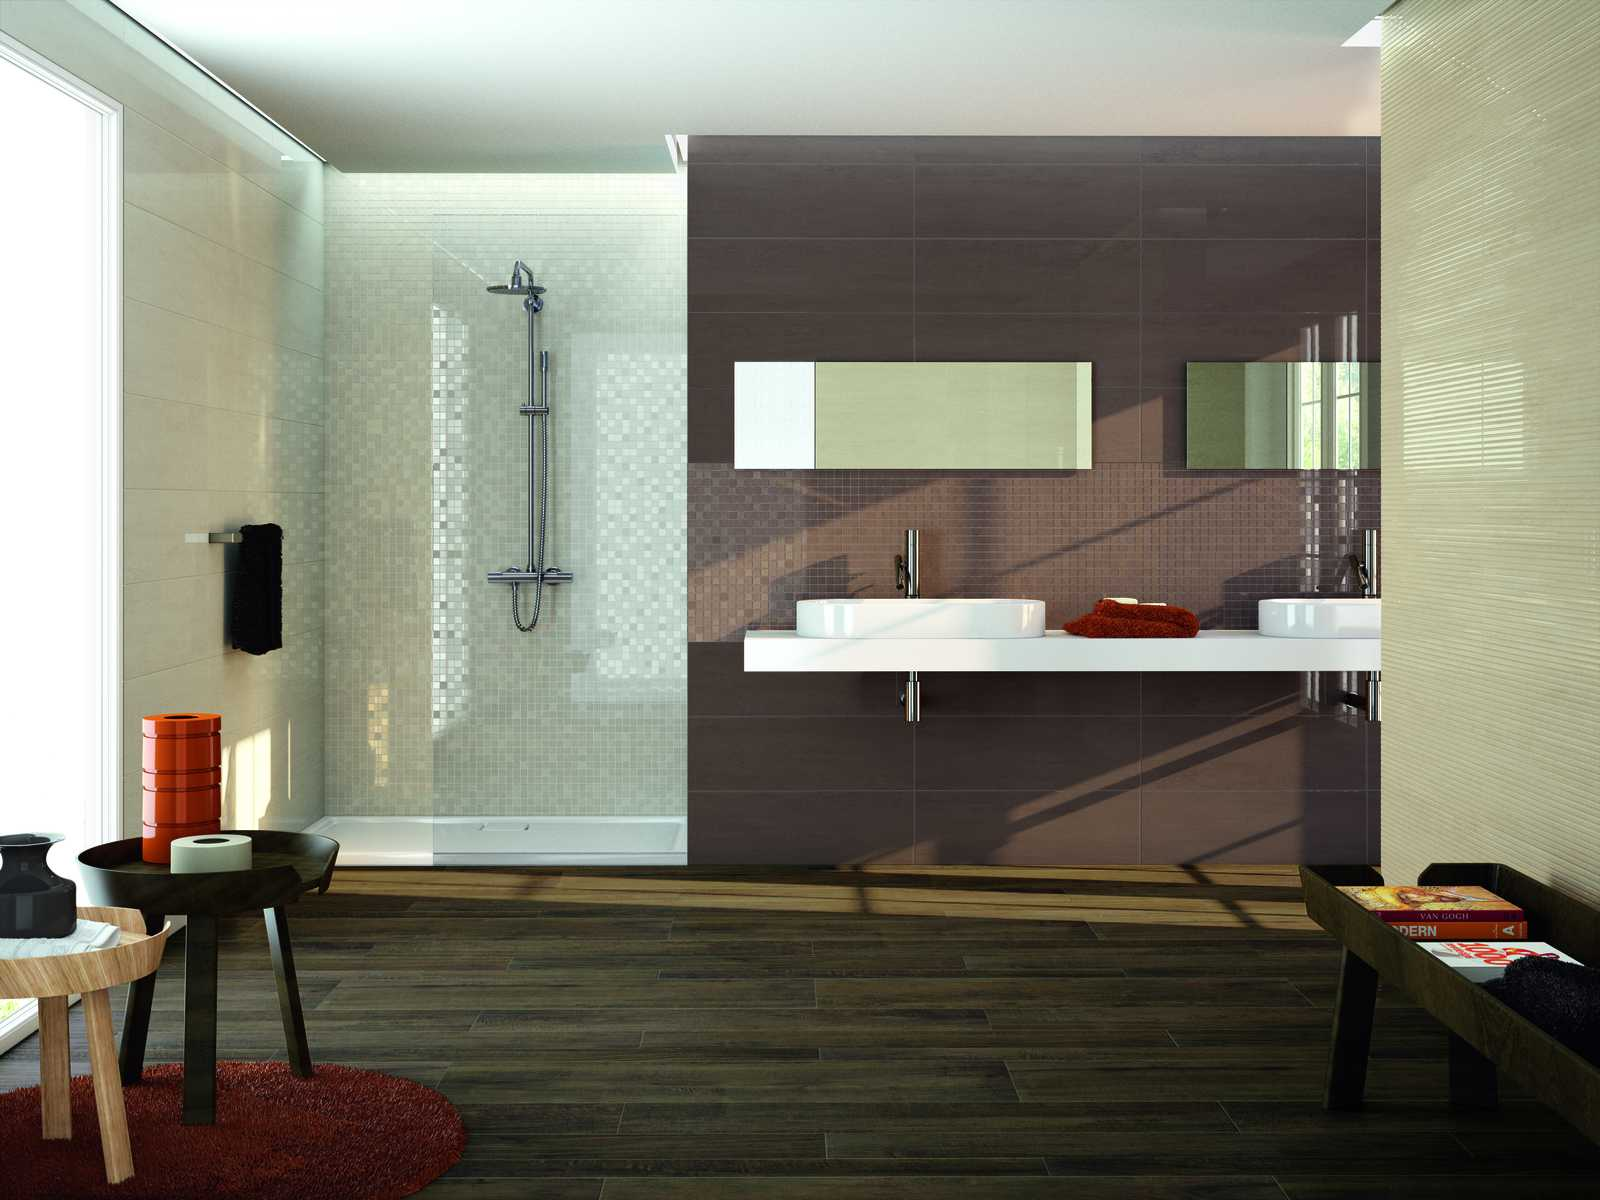 dressy bathroom porcelain stoneware marazzi. Black Bedroom Furniture Sets. Home Design Ideas